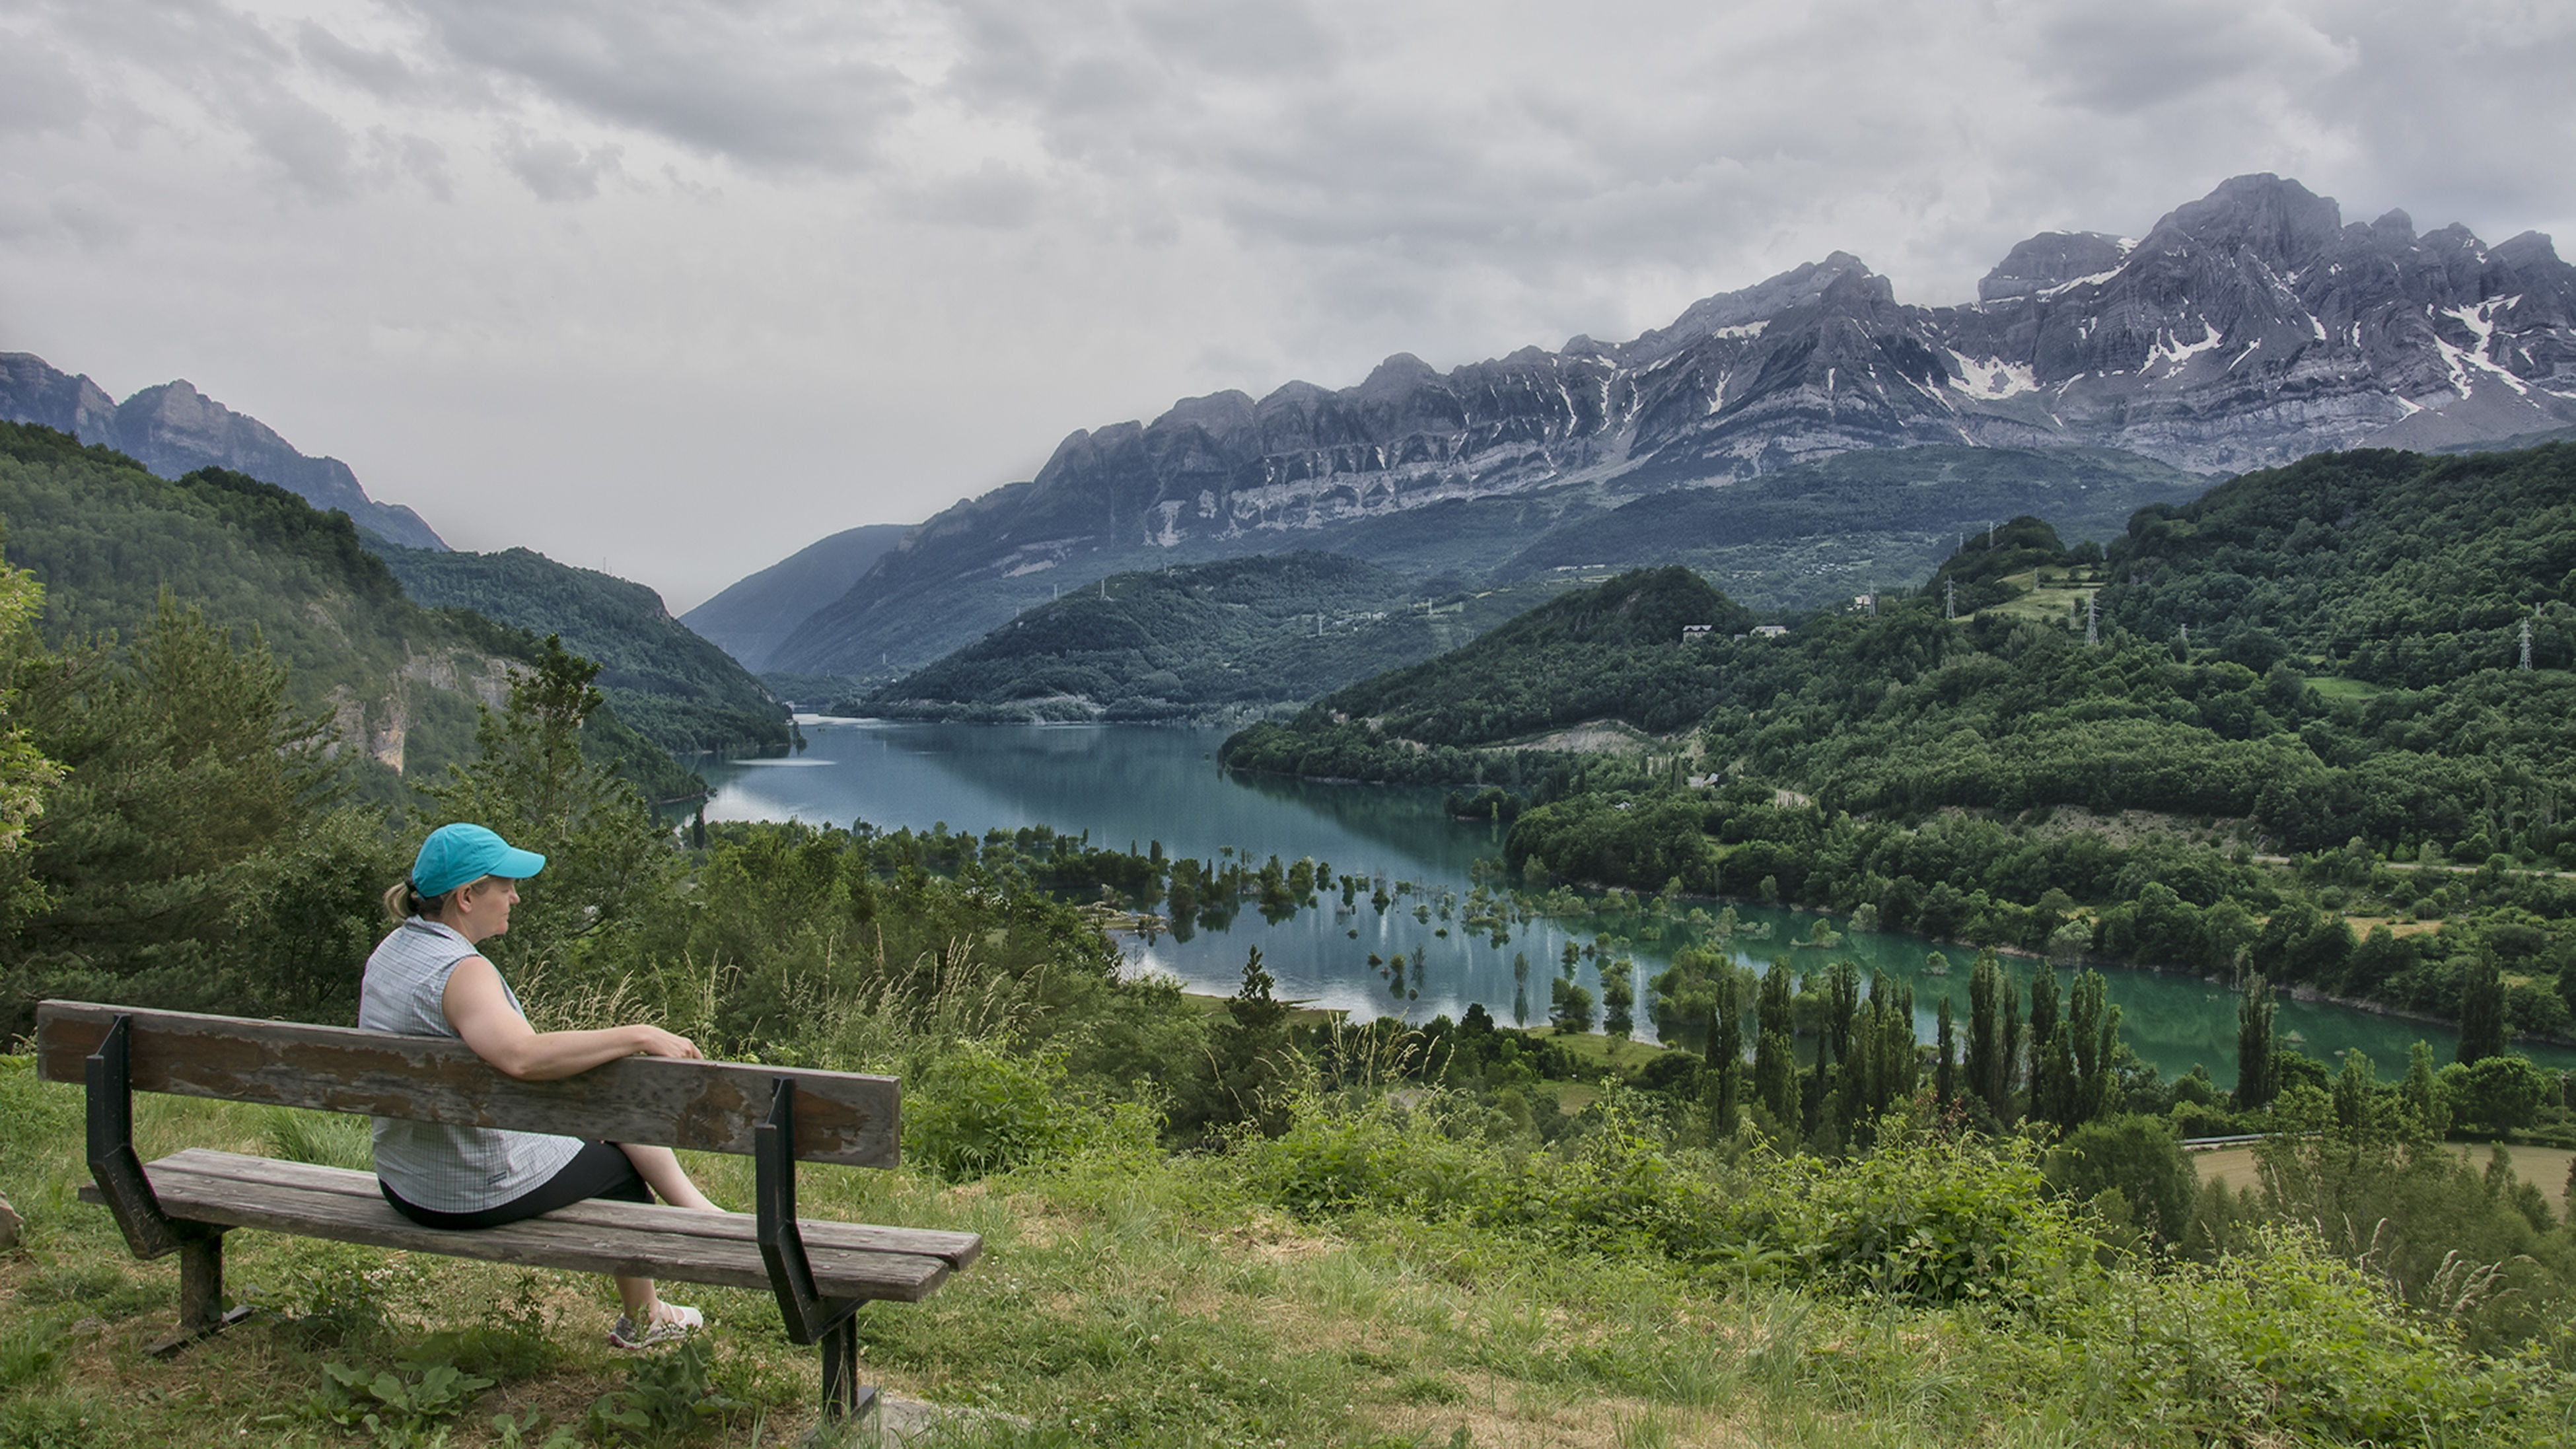 mountain, nature, real people, water, beauty in nature, scenics, lake, day, one person, sitting, tranquil scene, sky, tranquility, outdoors, lifestyles, leisure activity, mountain range, landscape, full length, tree